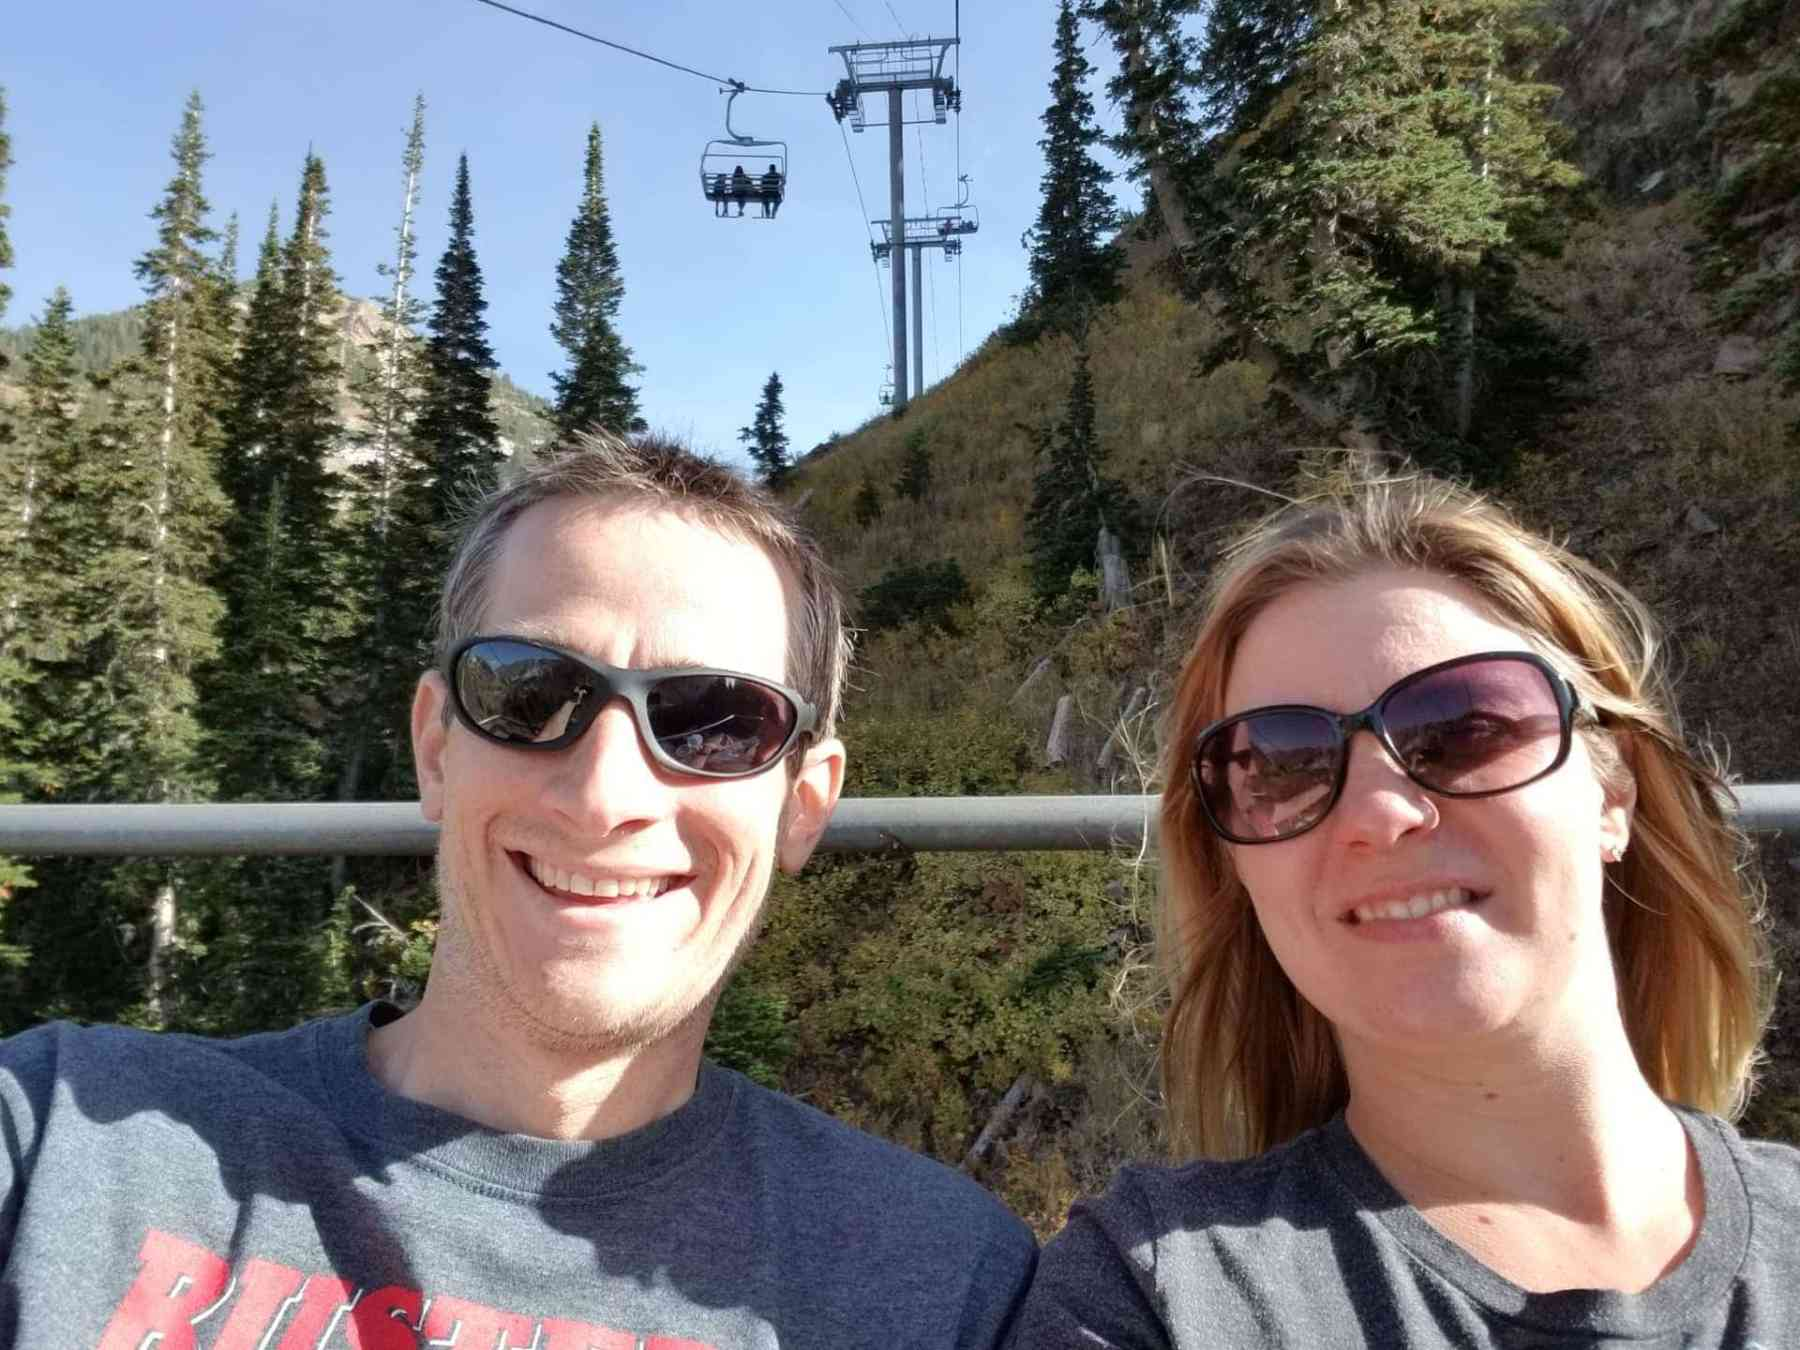 Riding Peruvian Chairlift at Snowbird